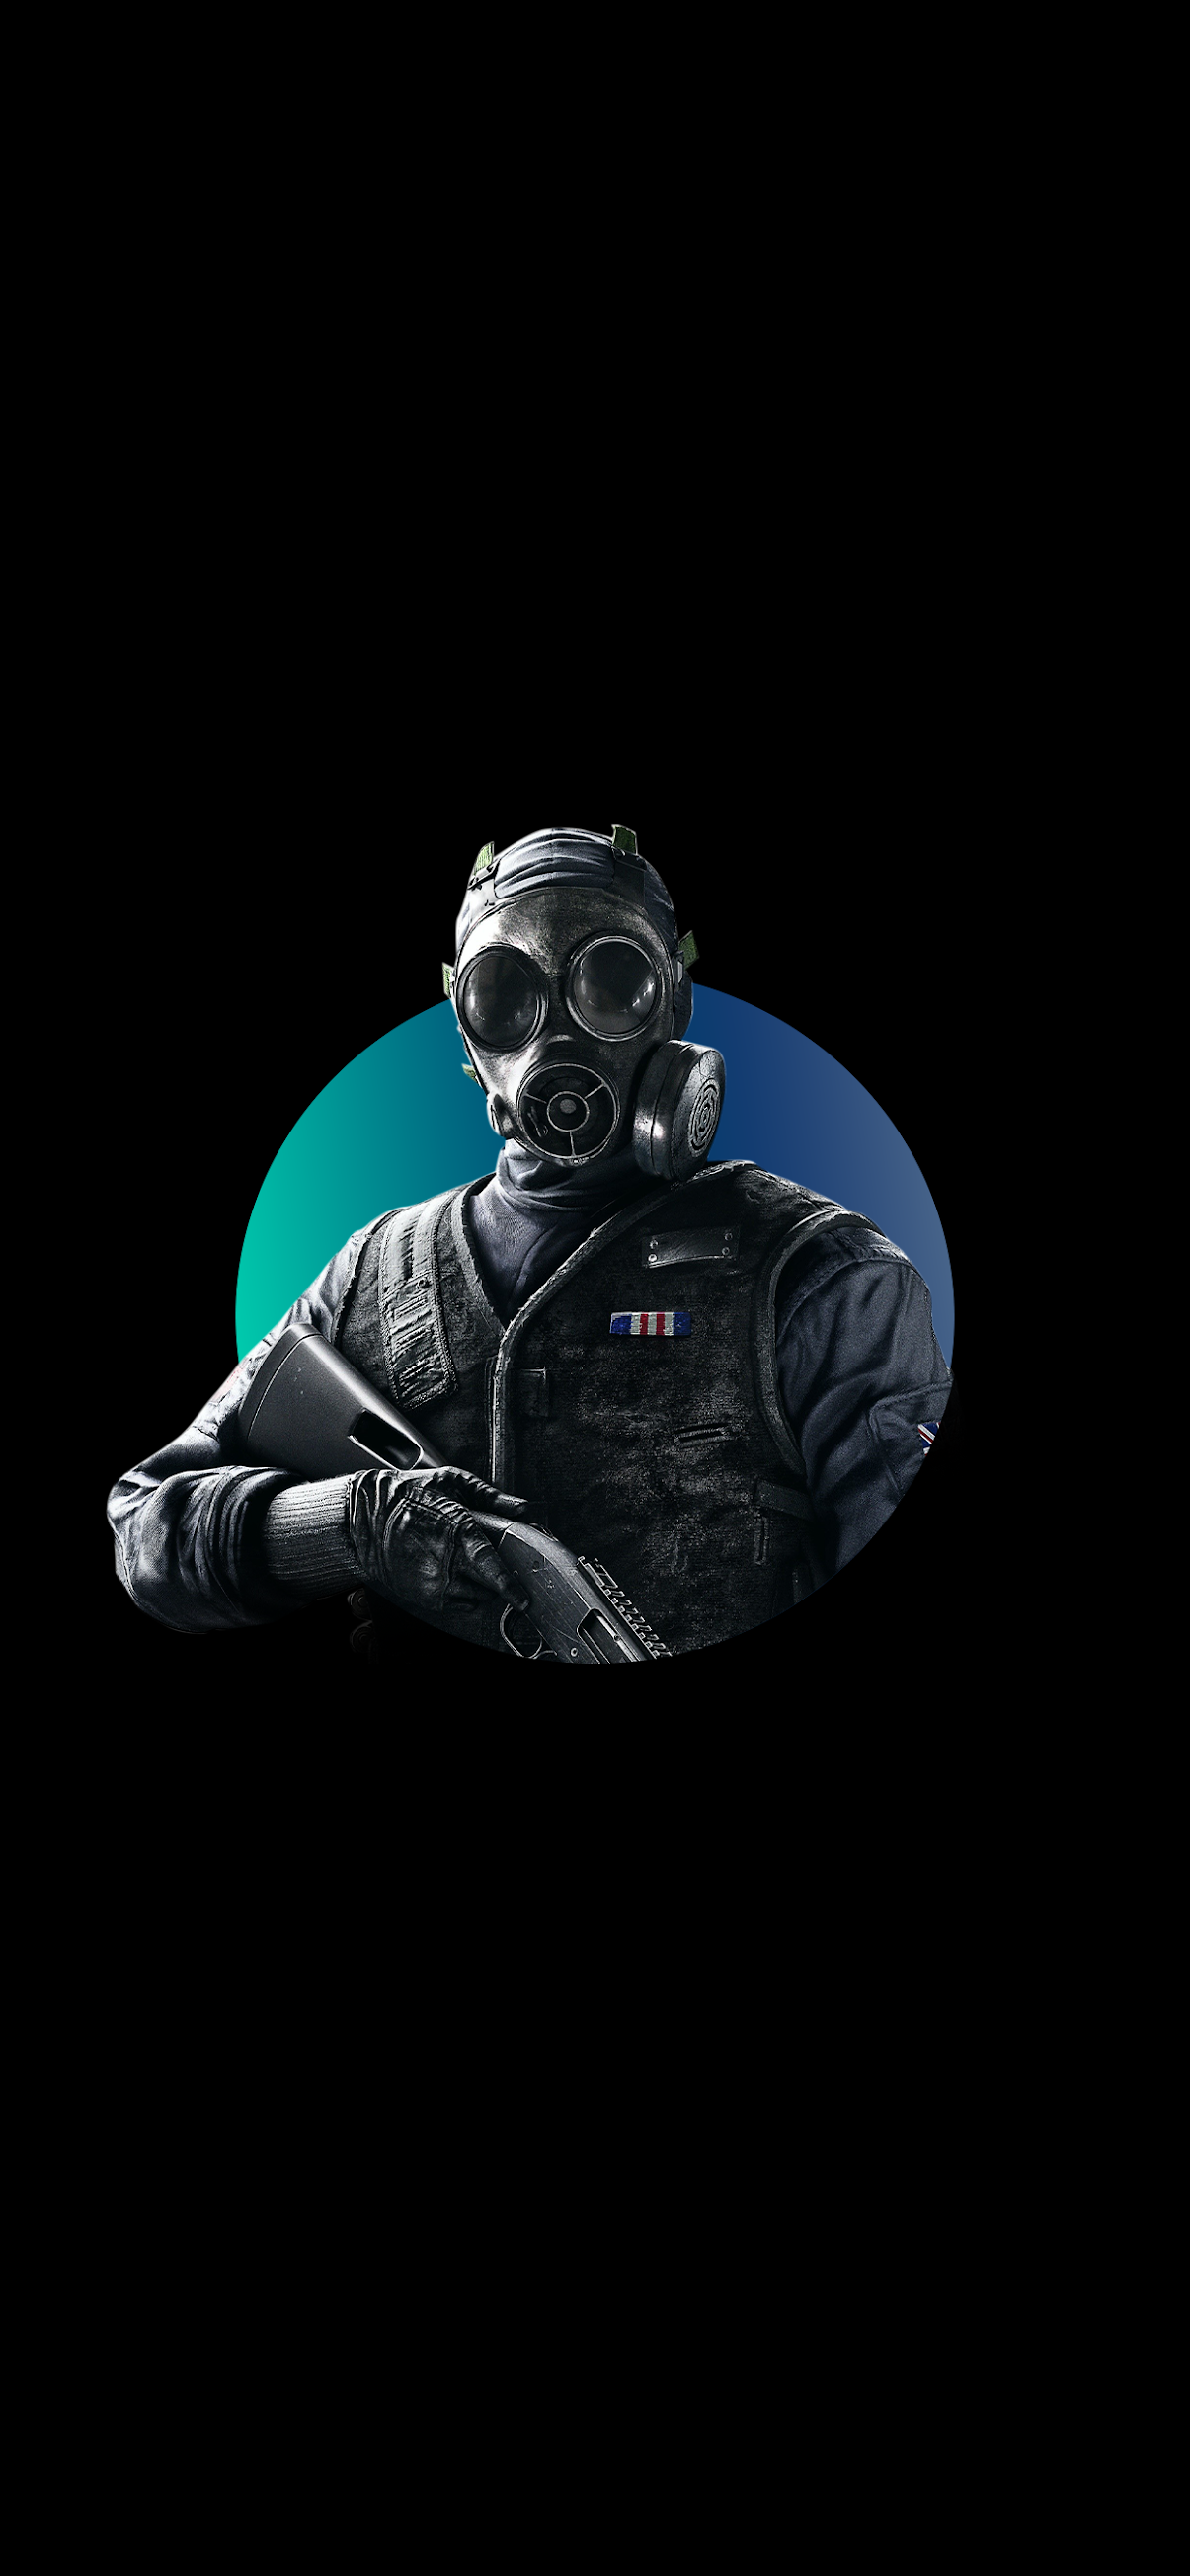 Thatcher de Tom Clancy's Rainbow Six Siege black wallpaper